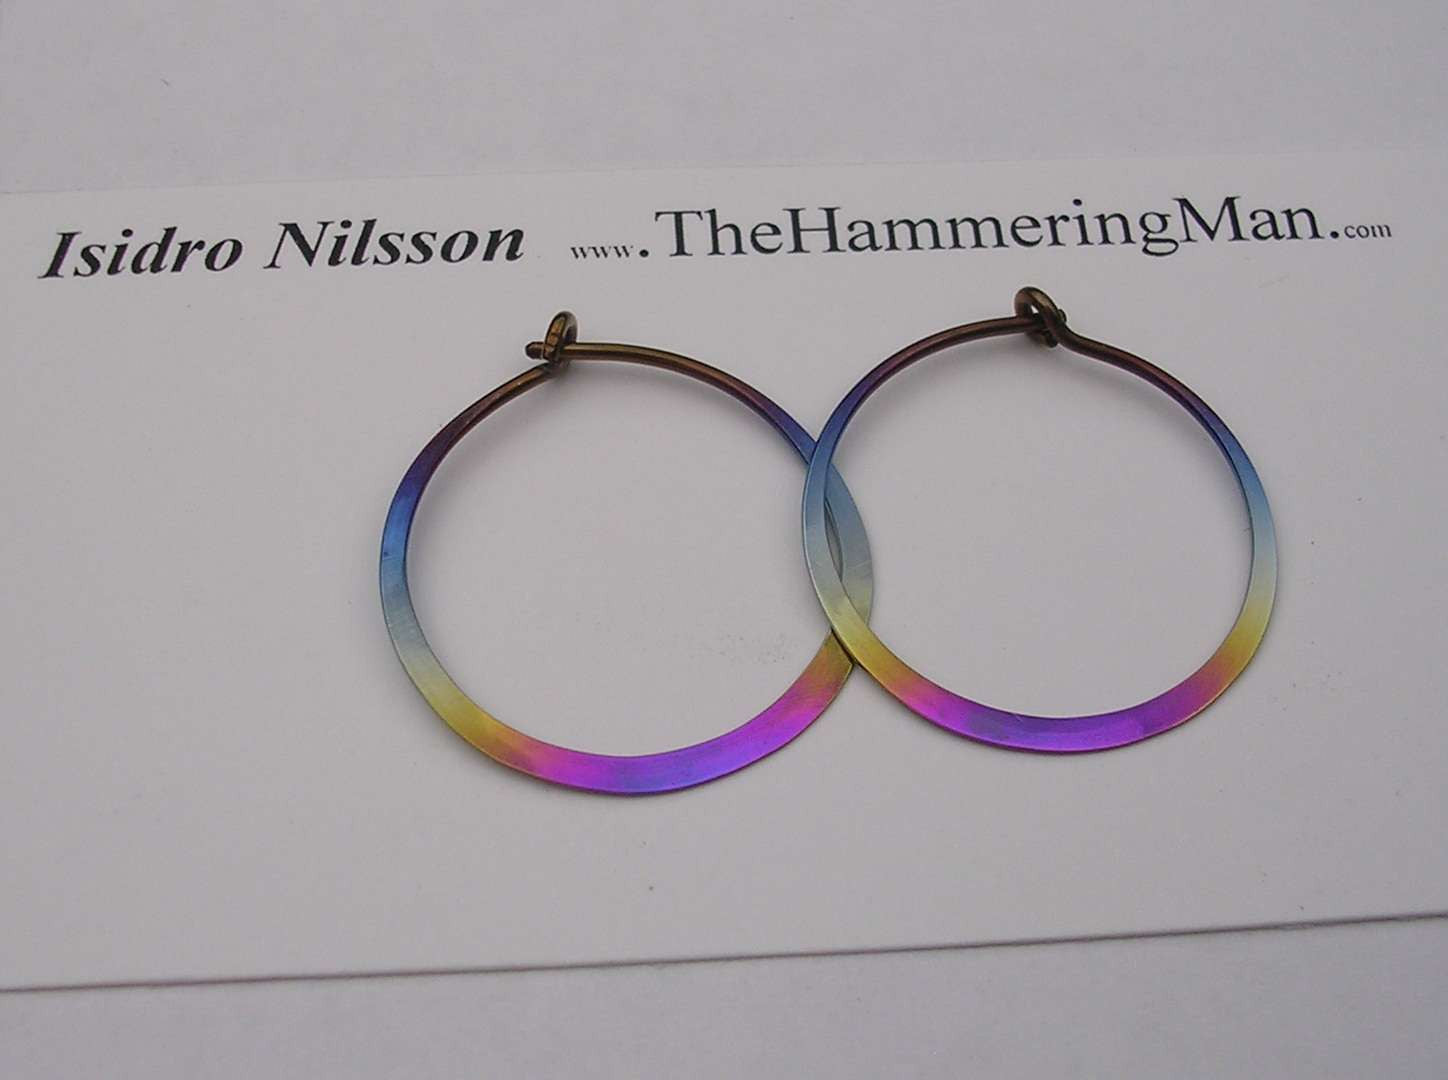 Niobium Rainbow Colored Hoop Earrings In Varioue Sizes